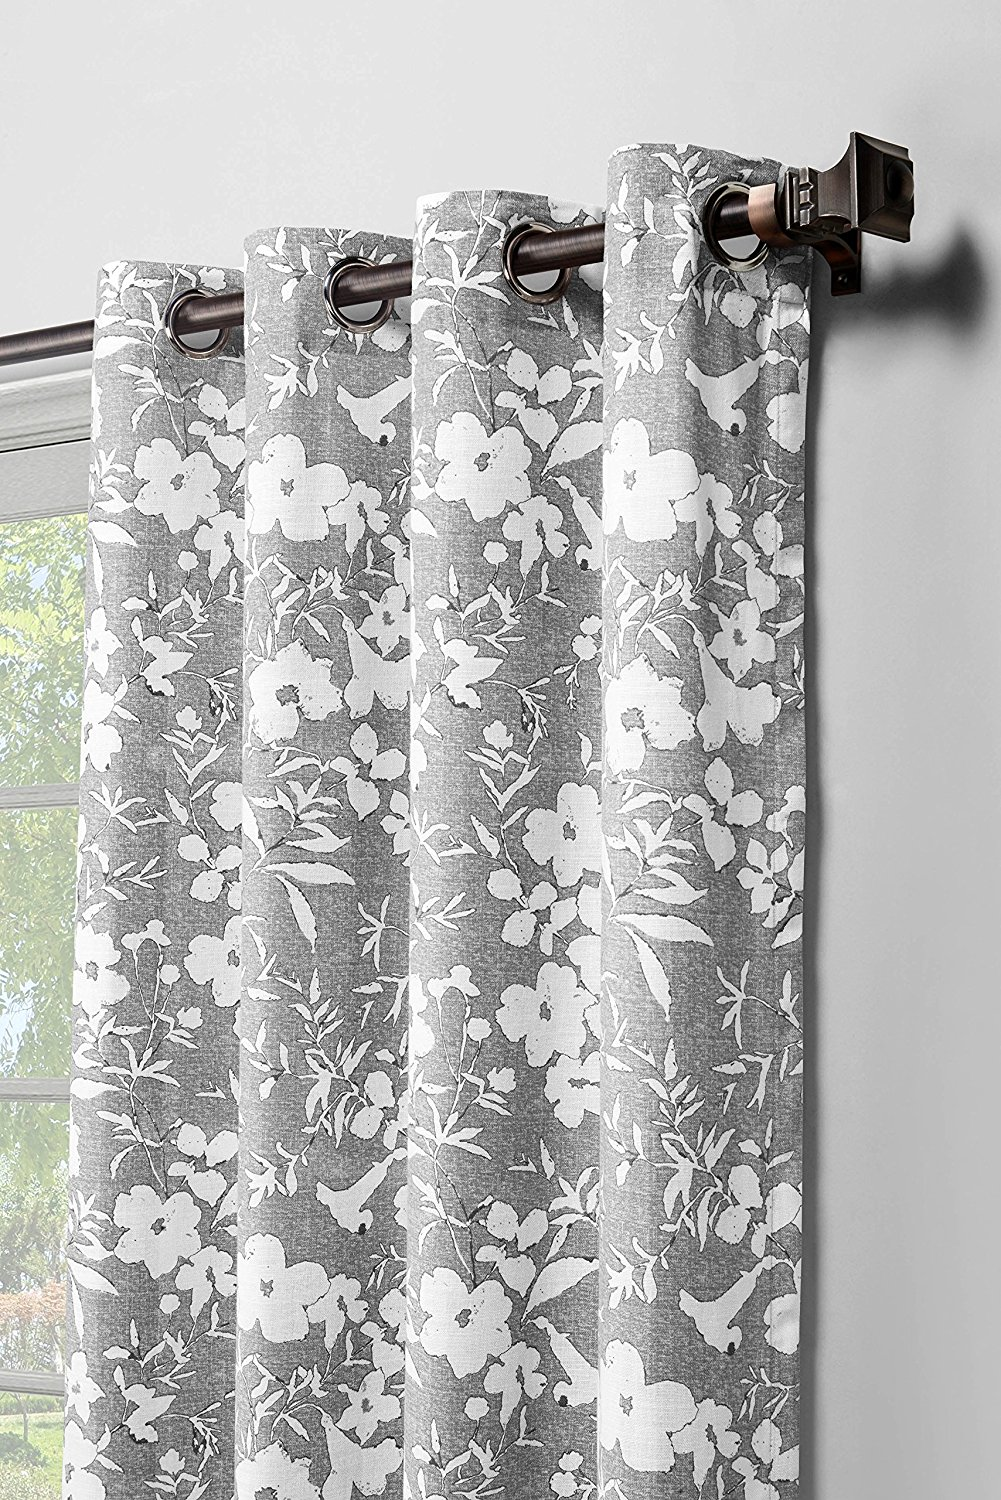 Window Elements Florabotanica Printed Cotton Extra Wide 104 x 84 in. Grommet Curtain Panel Pair, Grey